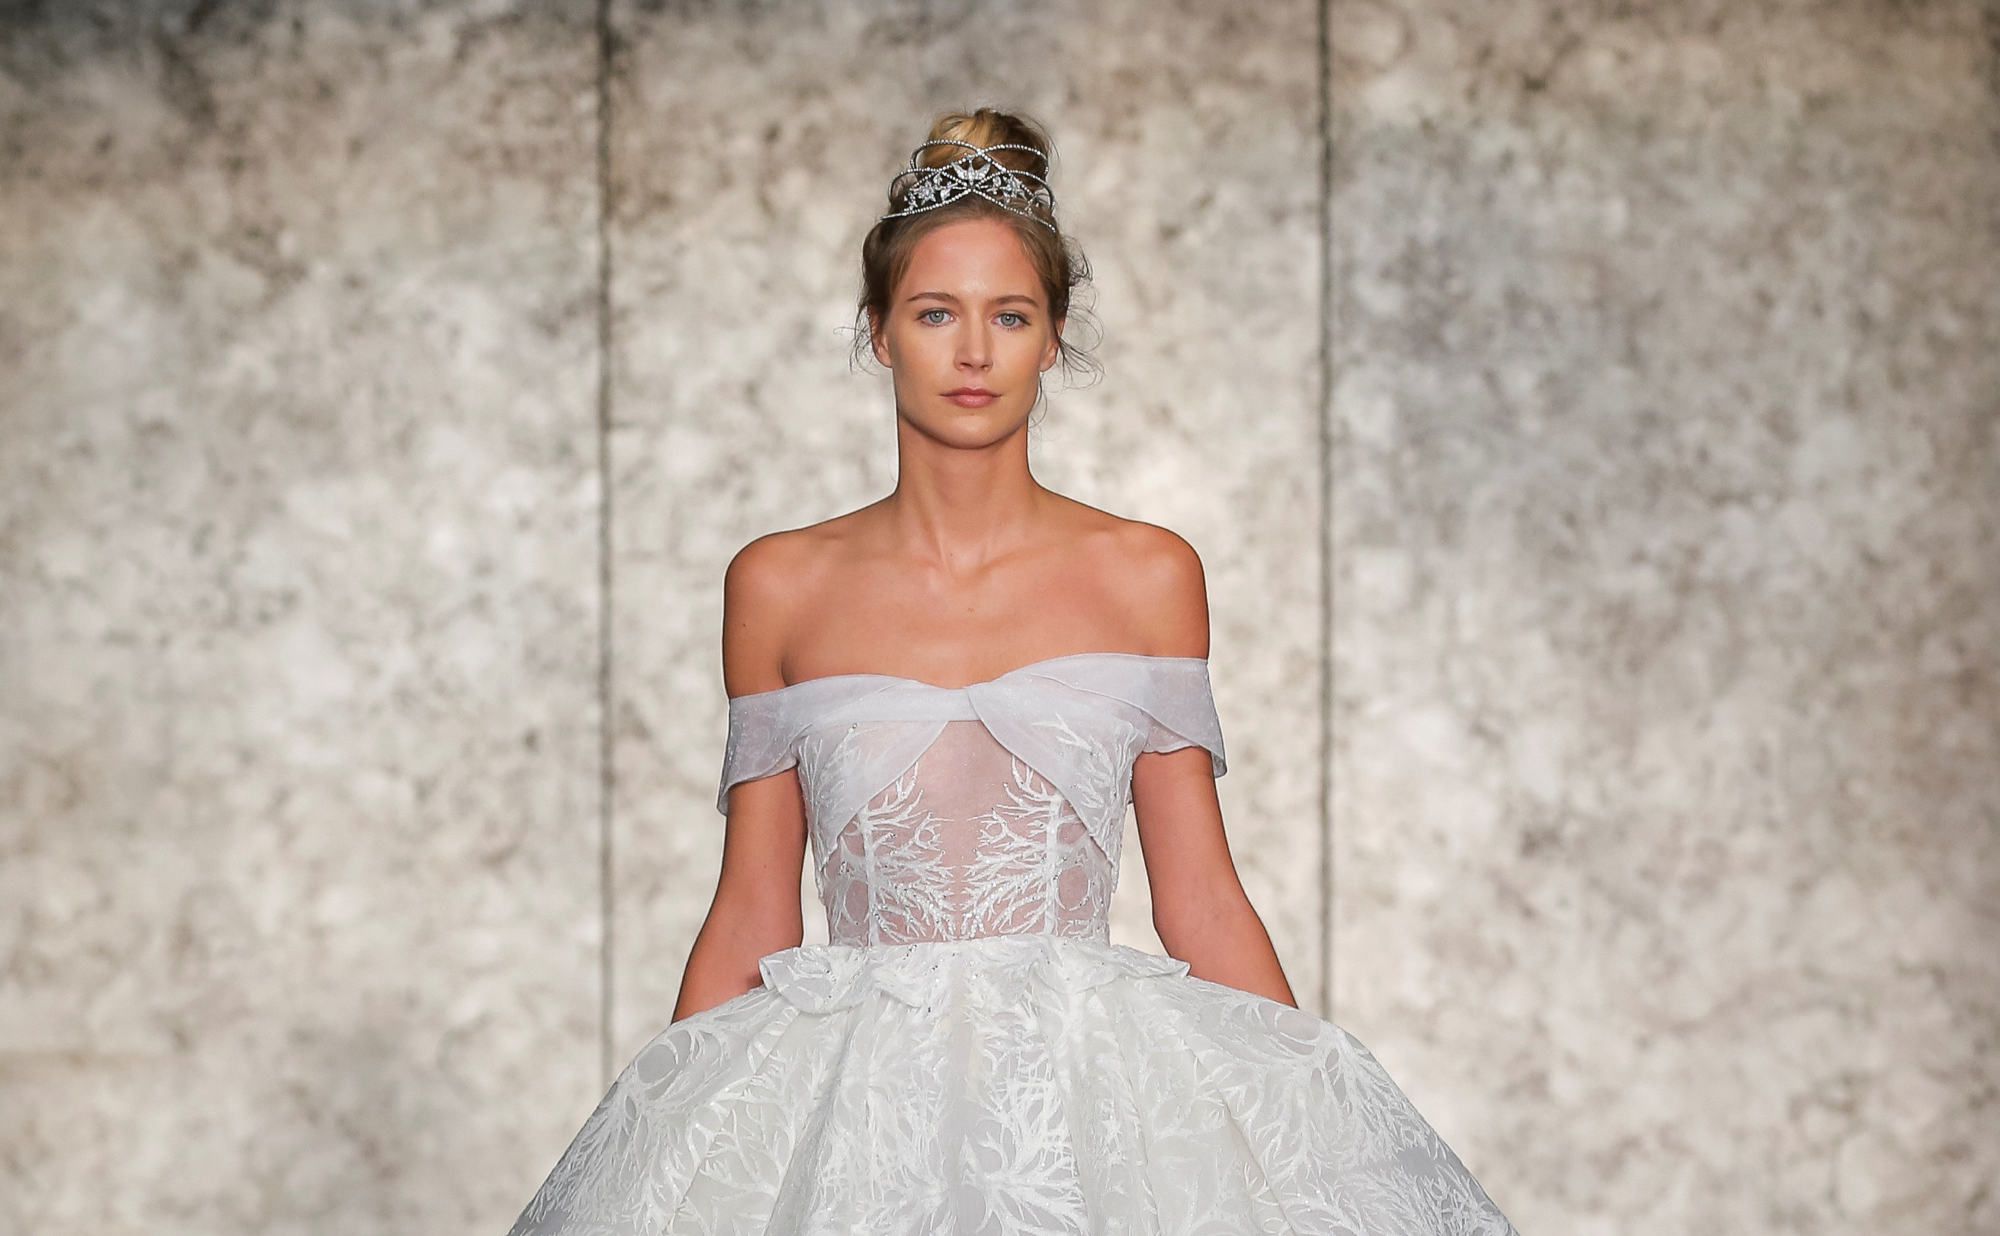 Israeli designer confirms wedding gown sketches for markle for Israeli wedding dress designer inbal dror